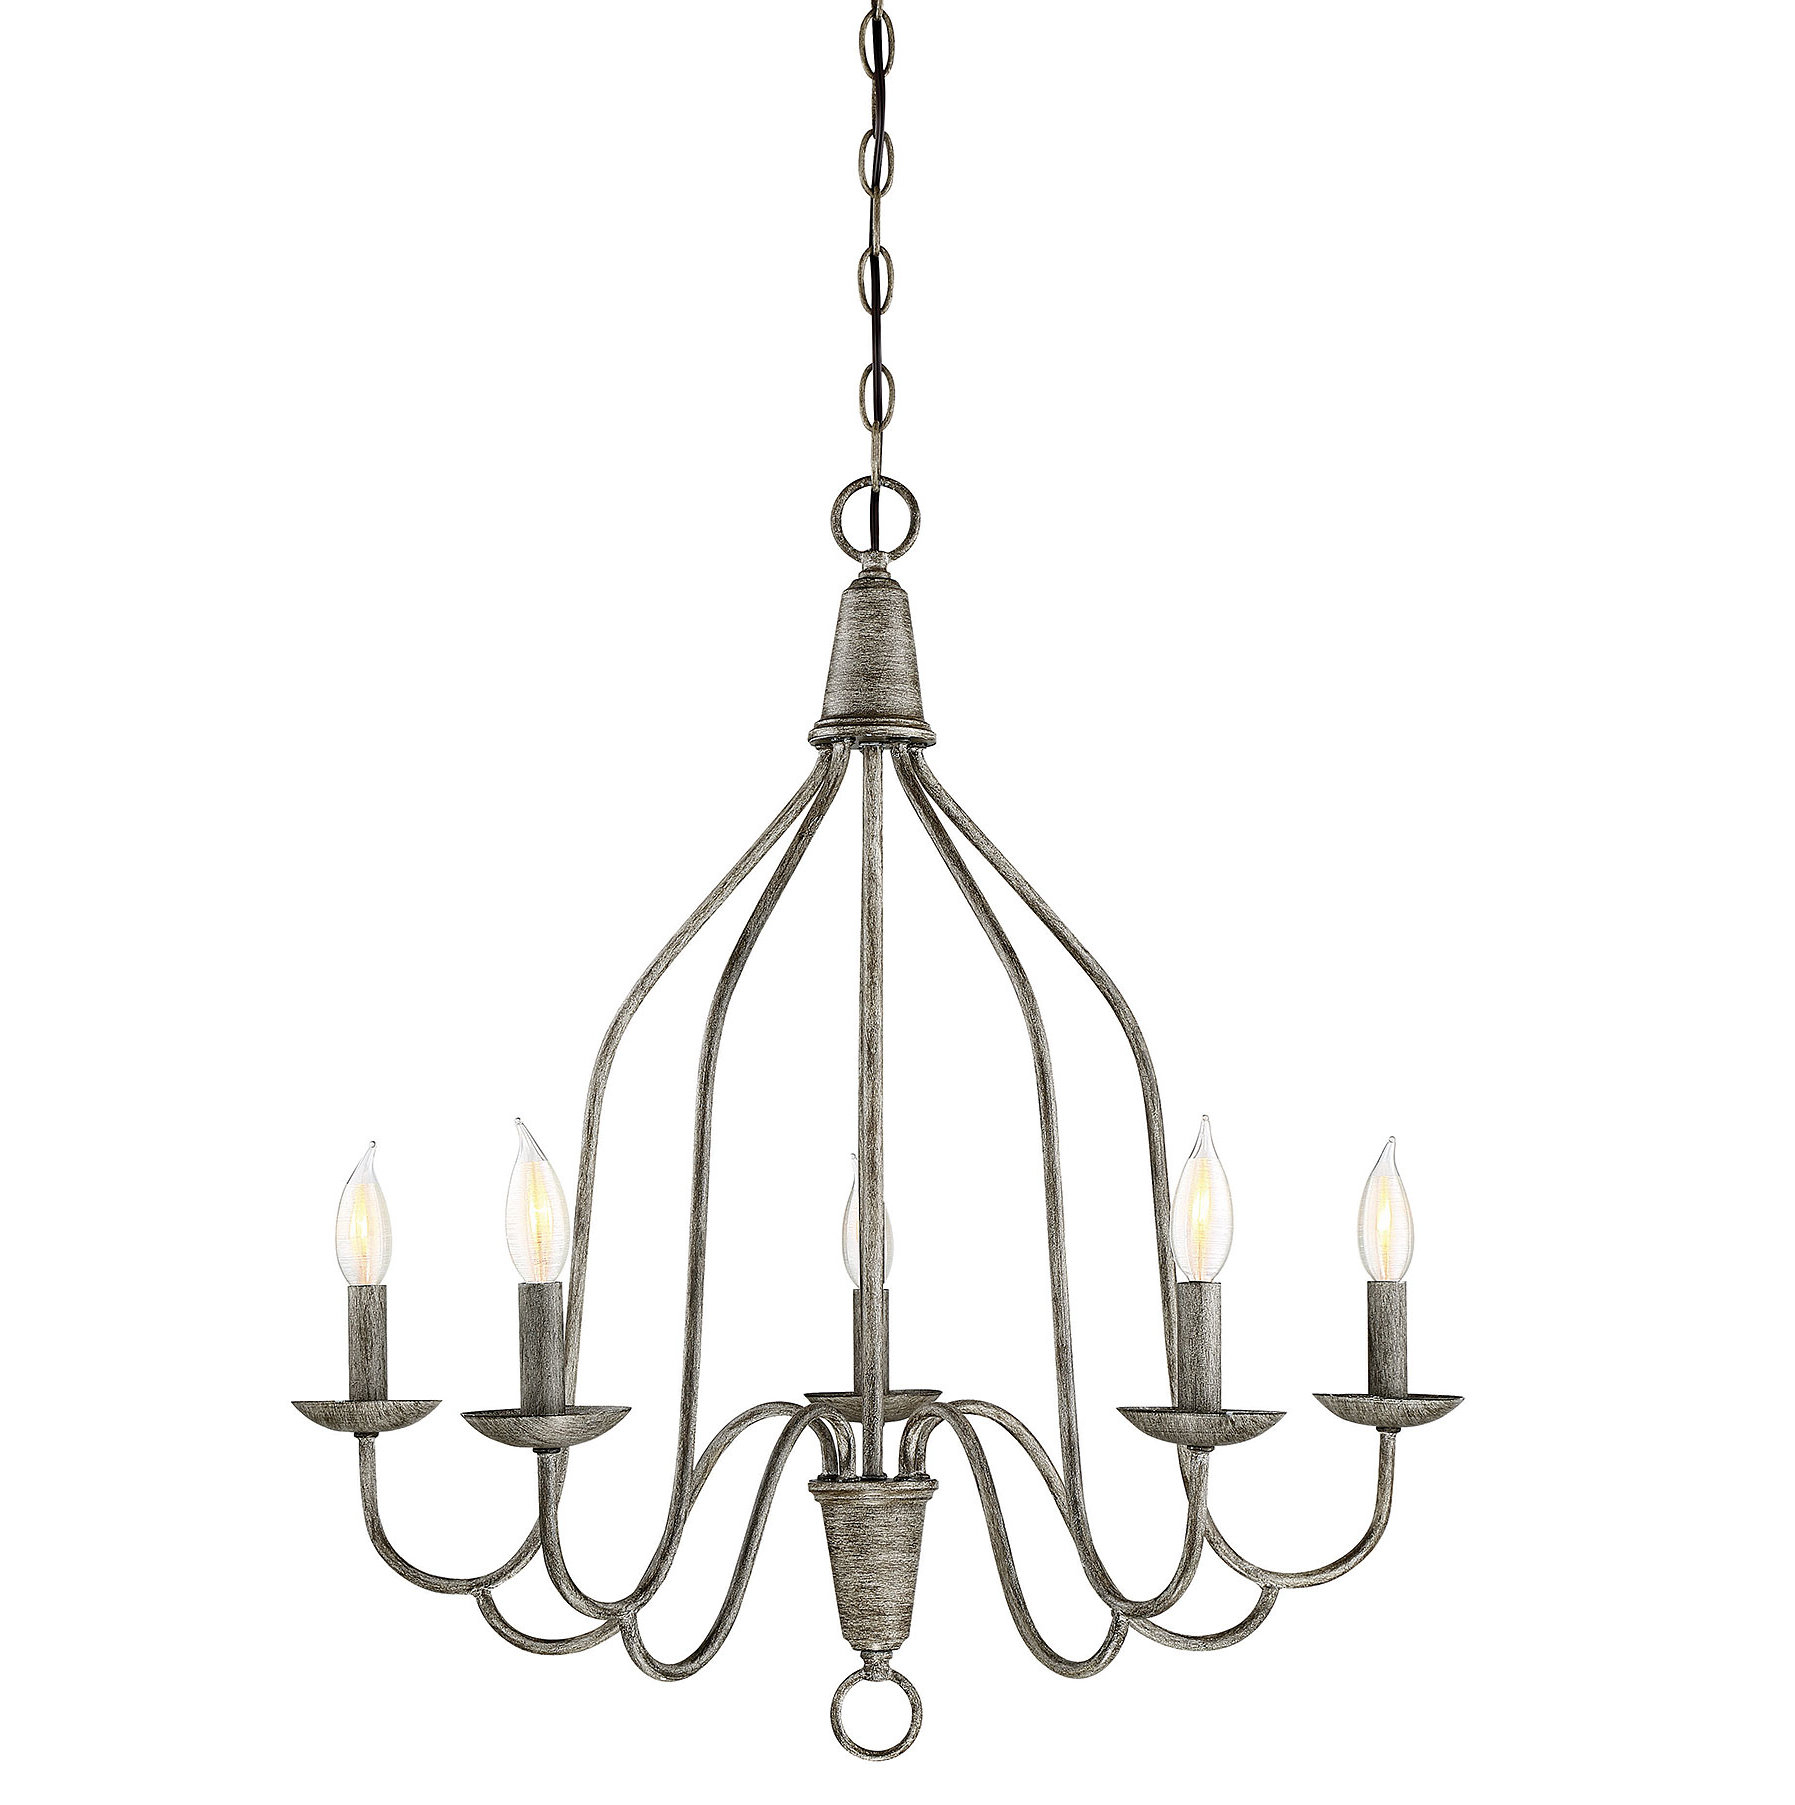 Geeta 5 Light Candle Style Chandelier Throughout Florentina 5 Light Candle Style Chandeliers (View 9 of 30)